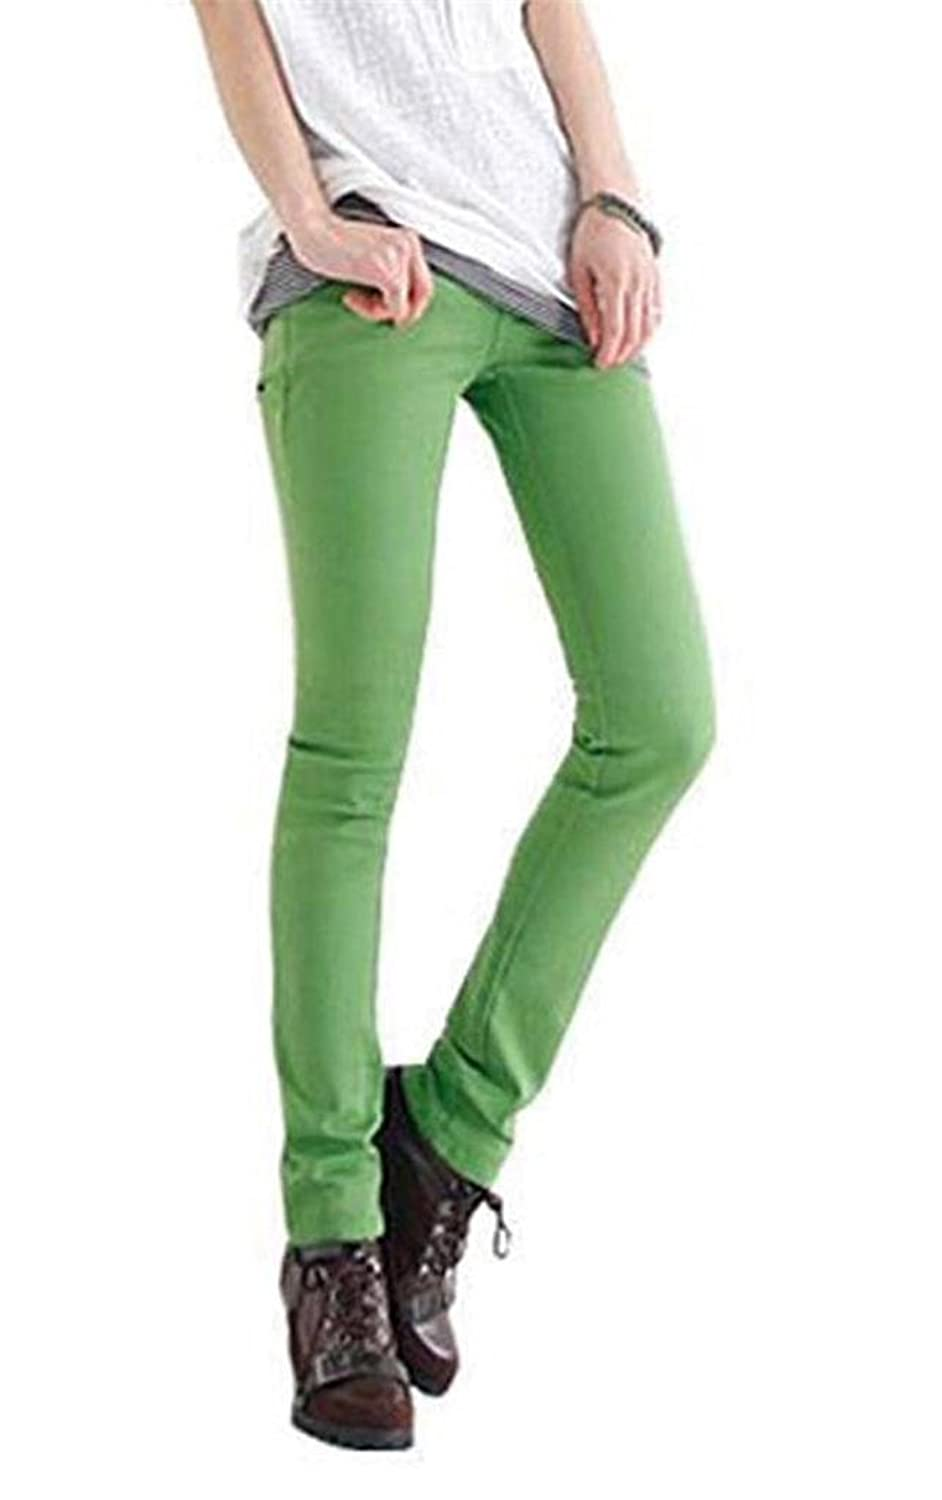 Jeansian Women Sexy Candy Colors Pencil Pants Slim Fit Skinny Stretch Jeans